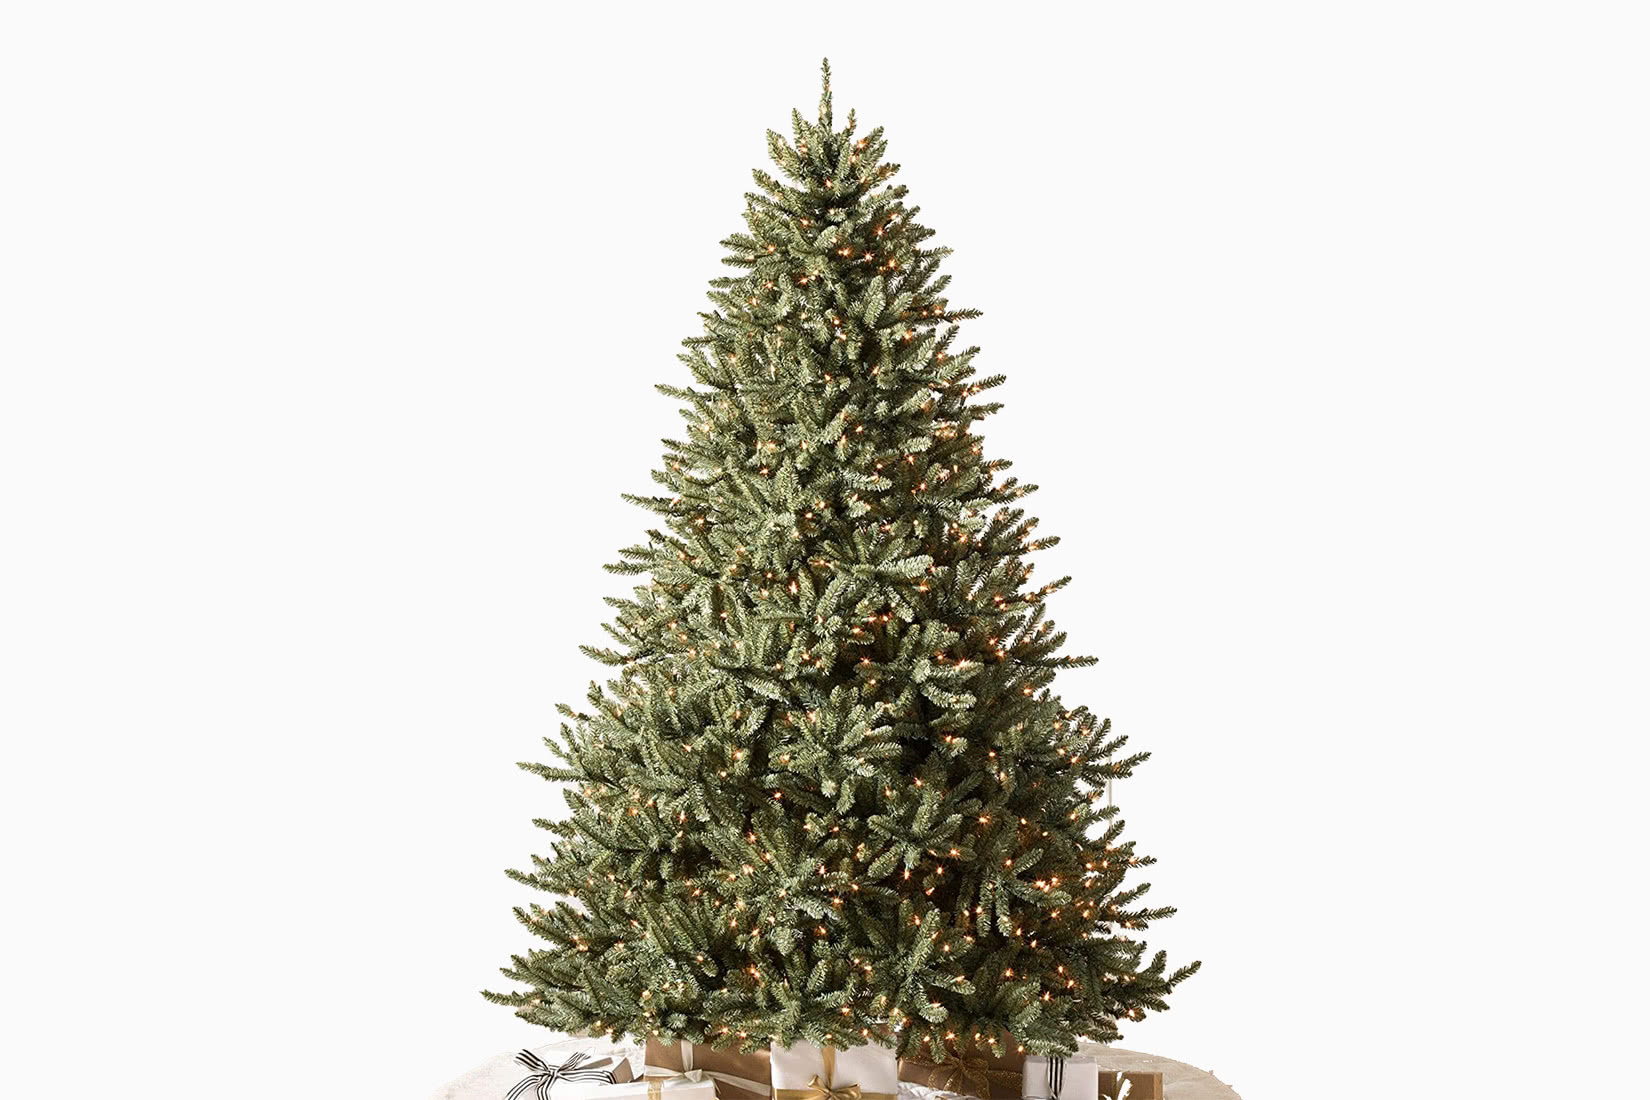 best artificial Christmas tree led balsam hill 4.5 review - Luxe Digital